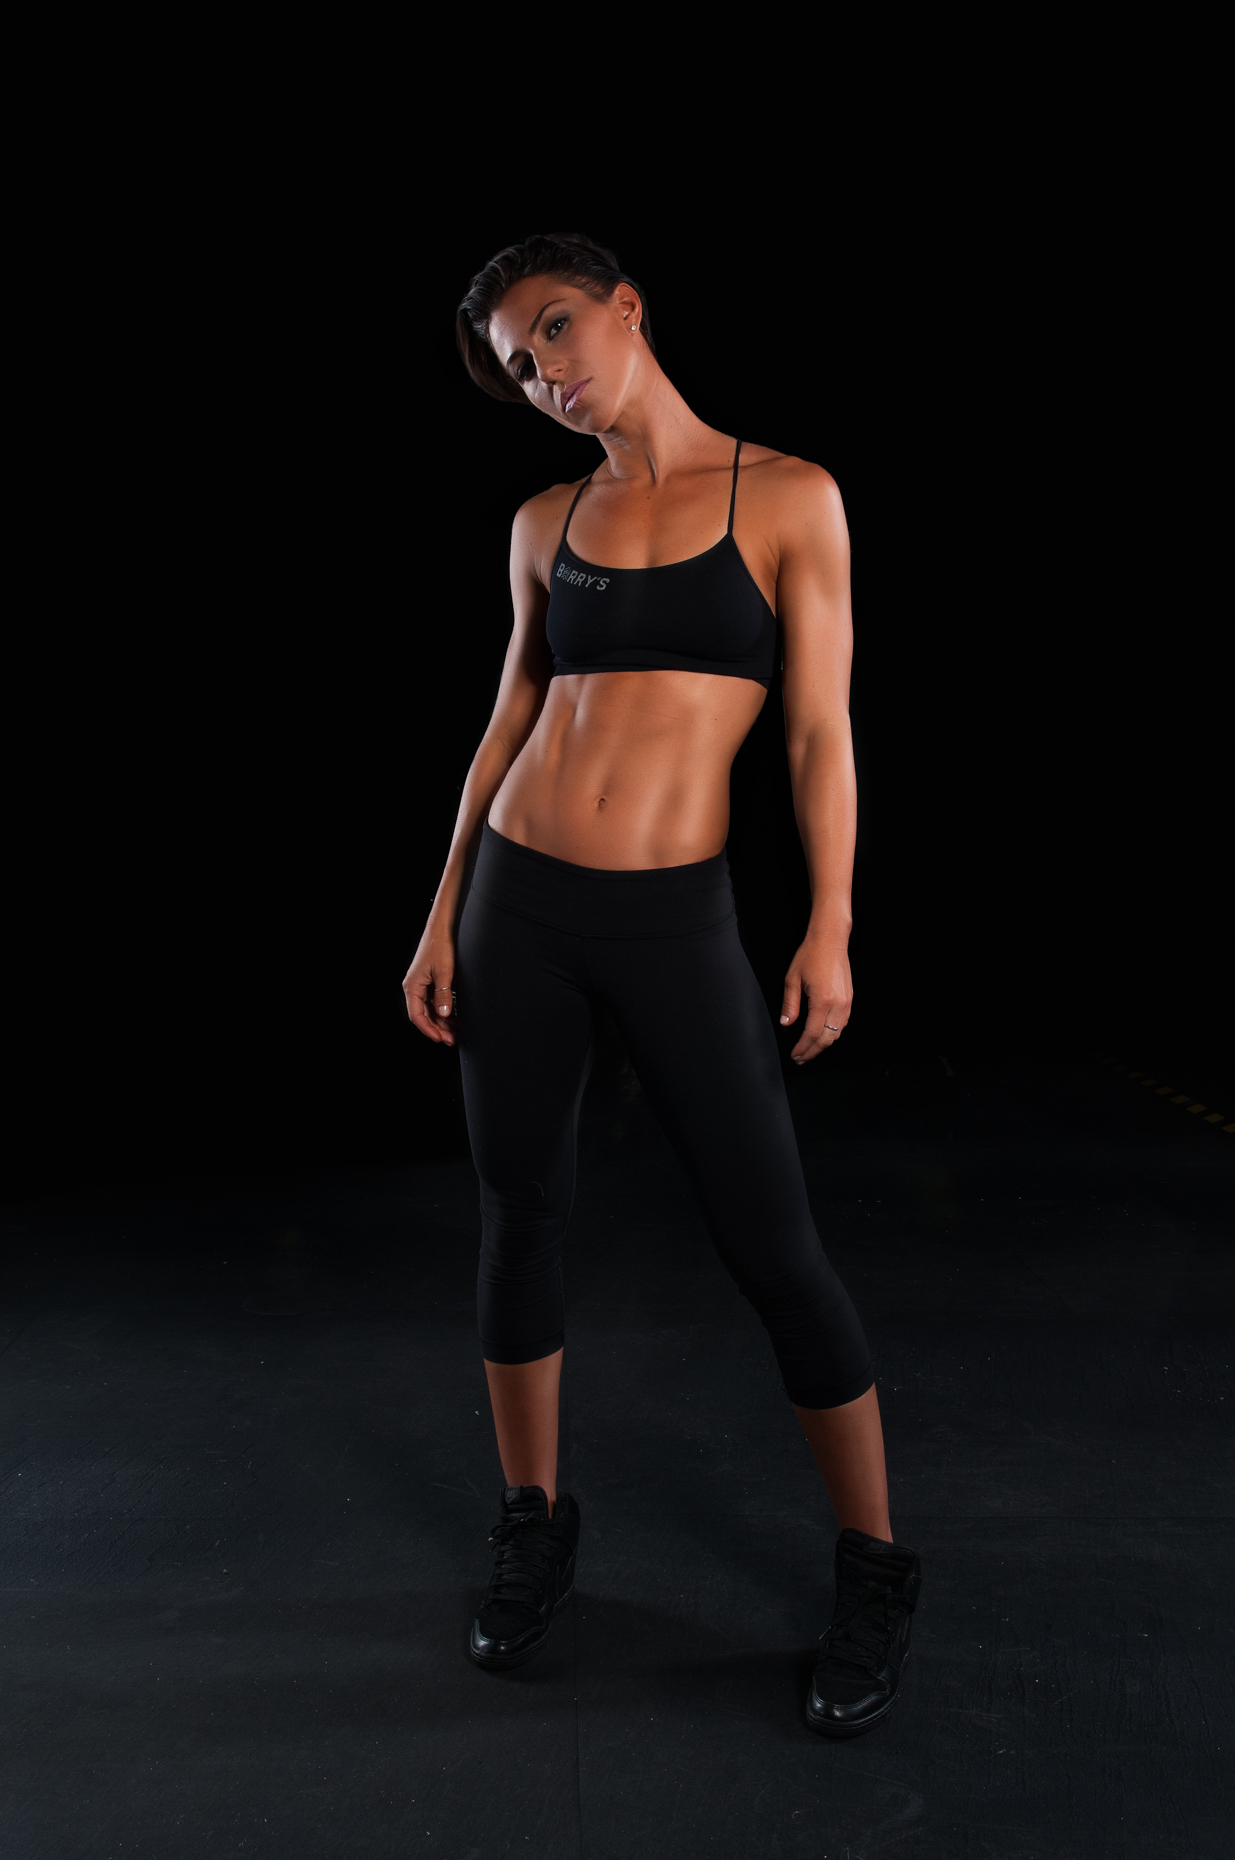 BarrysBootcamp-MiamiBeach-Athleteportrait-1